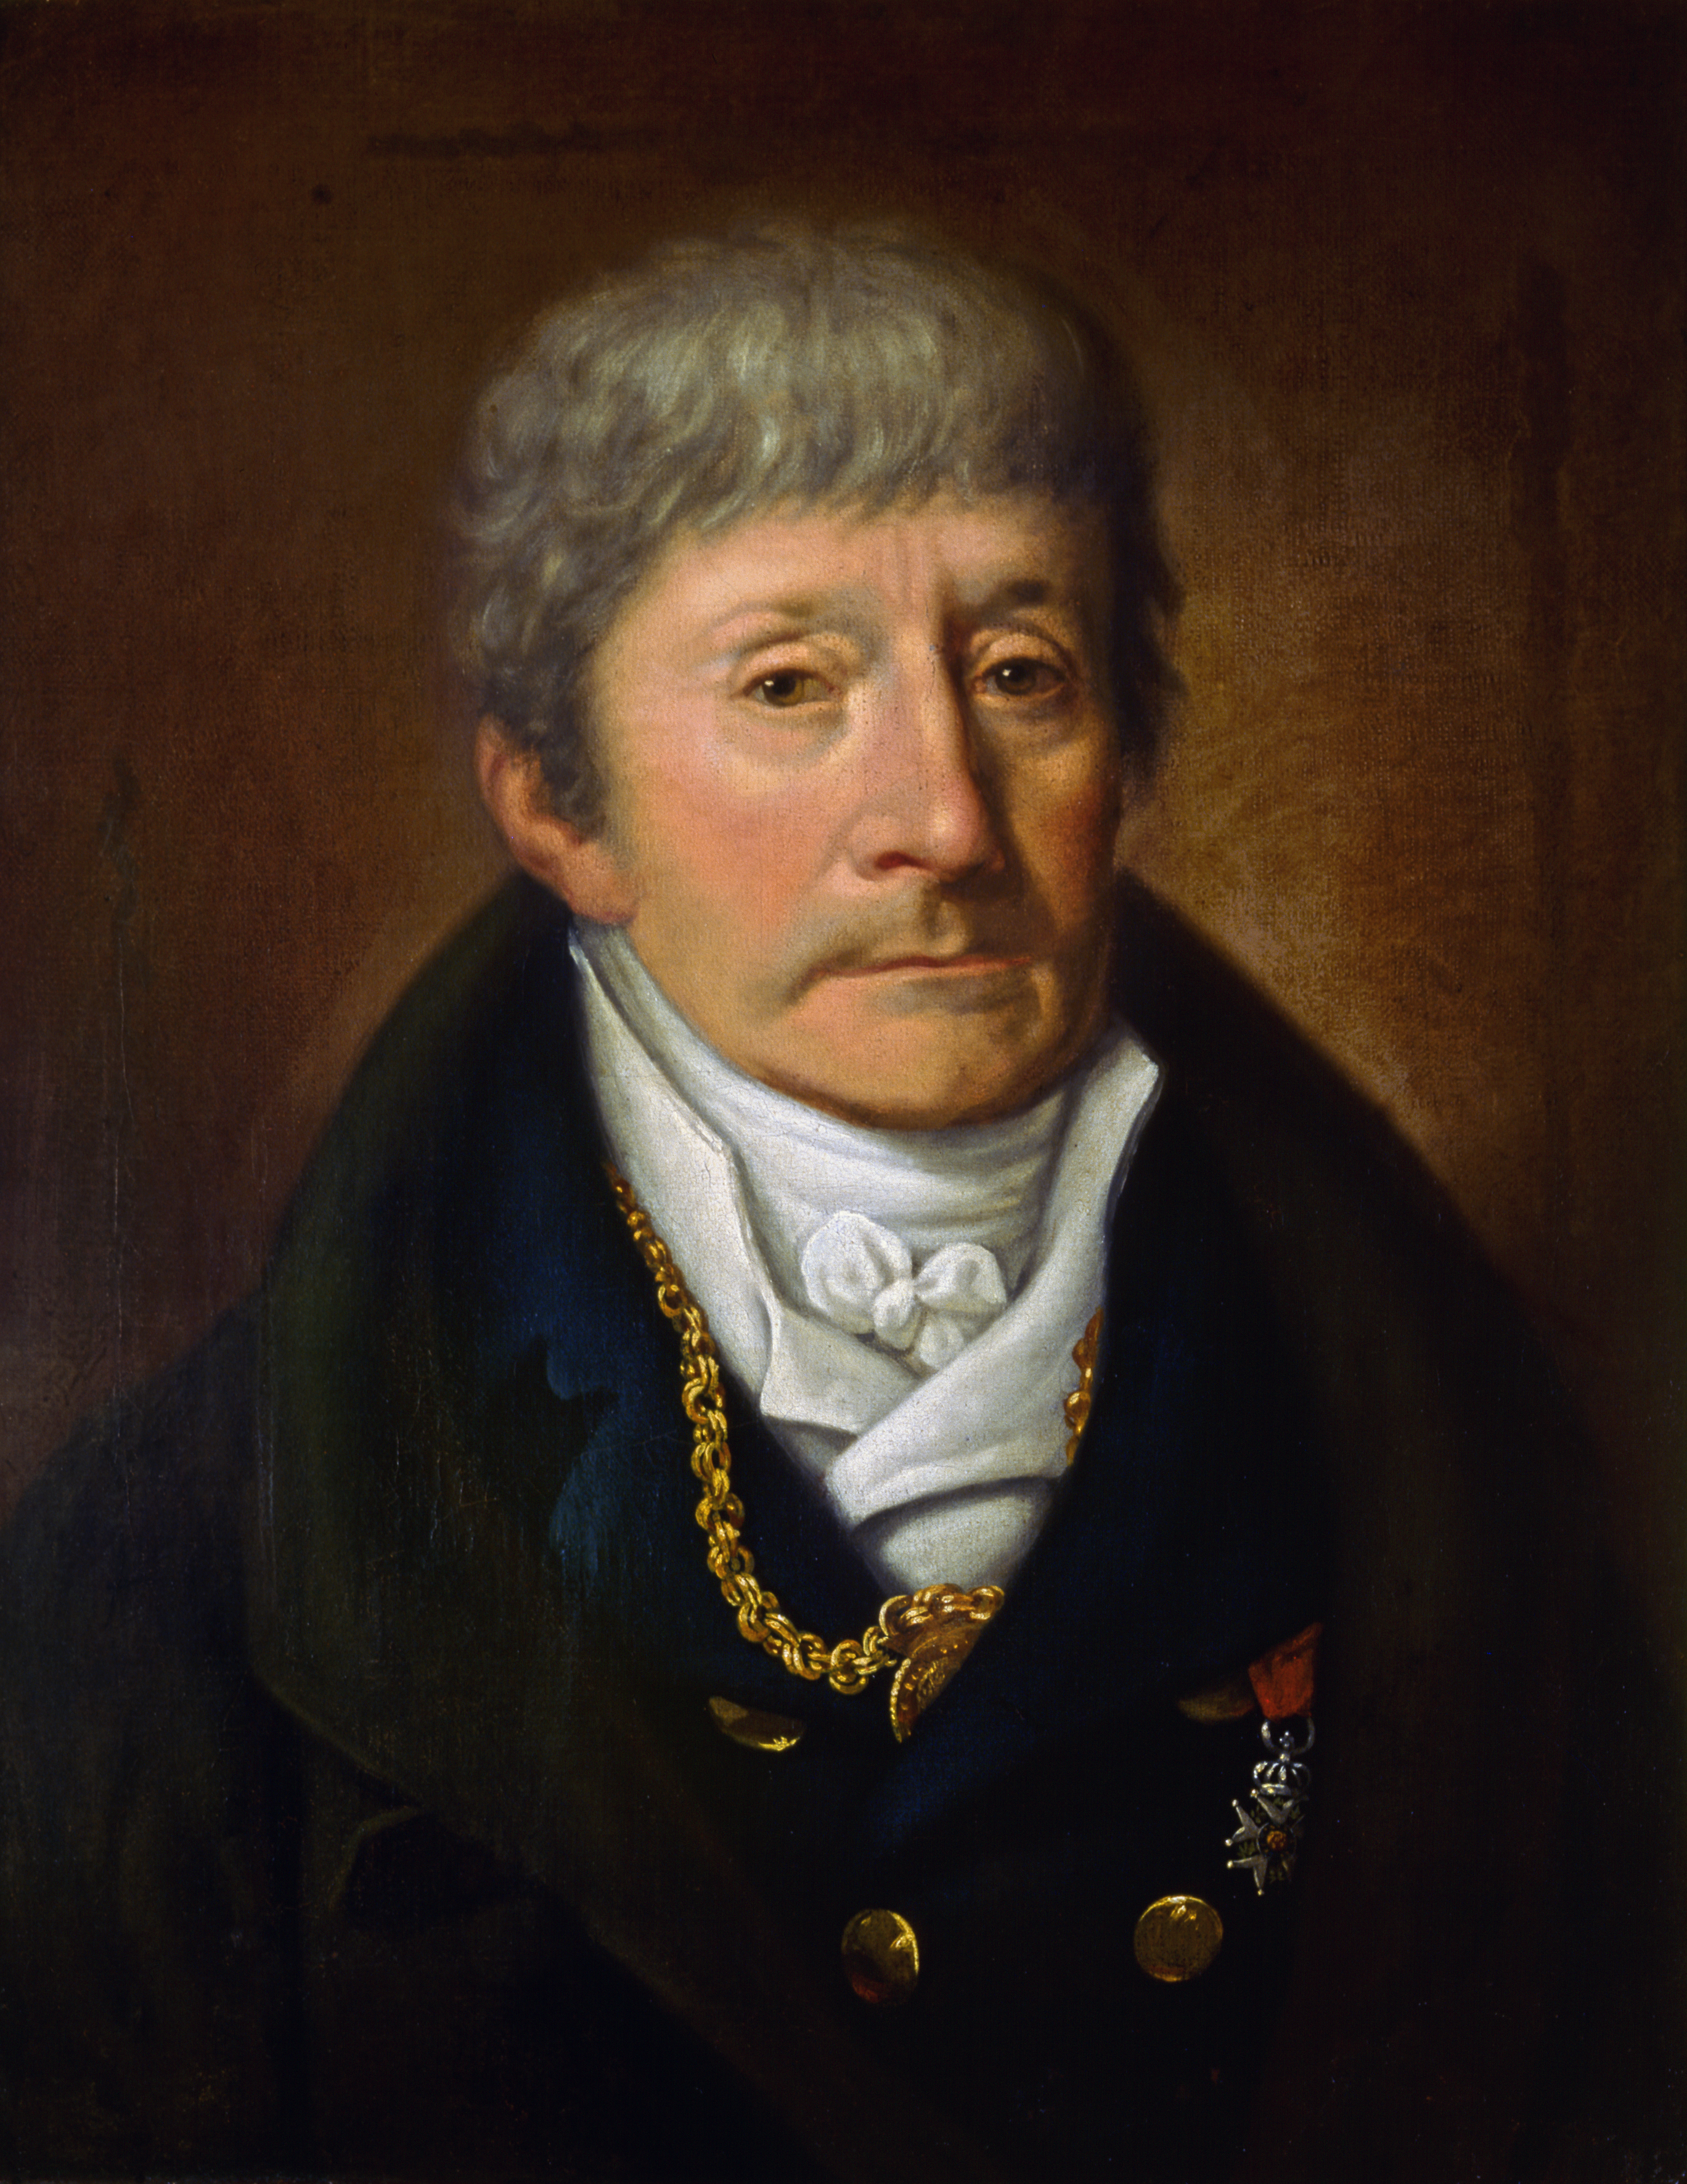 antonio salieri and mozart relationship status